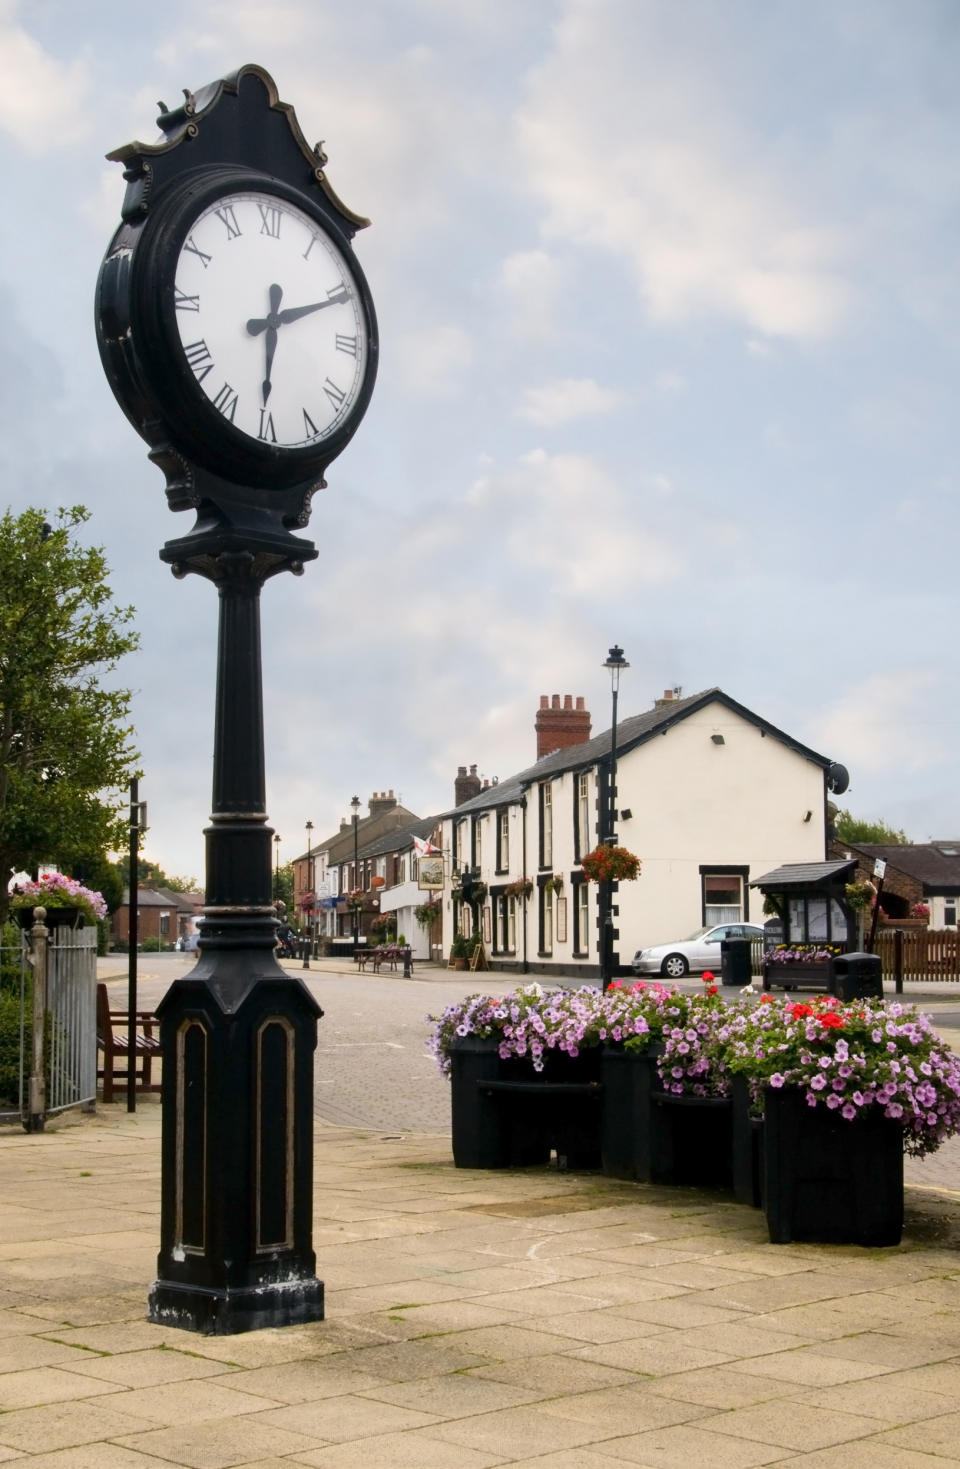 Freckleton Village and clock in Lancashire, with flower display and public house